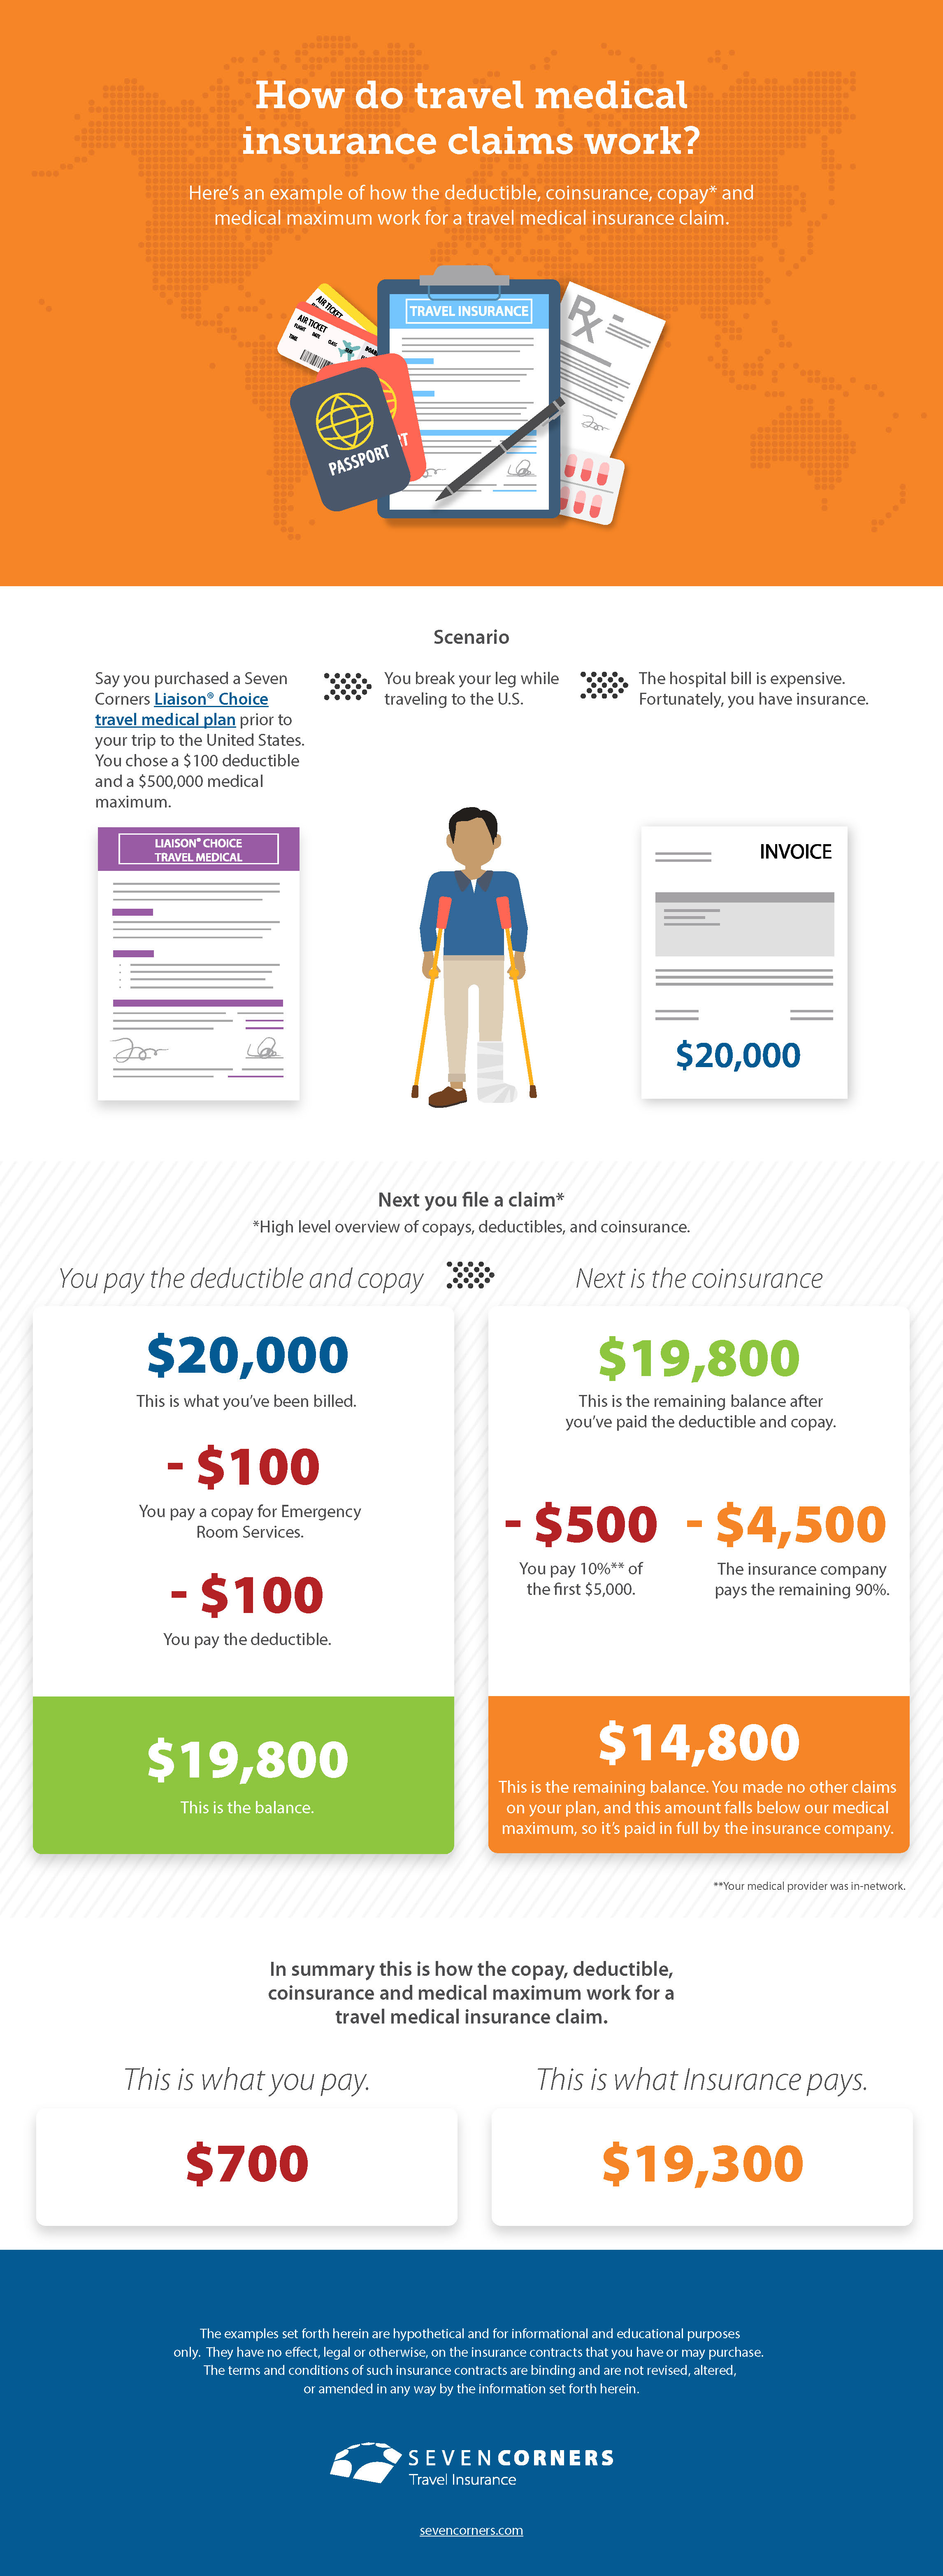 How Claims Work Infographic